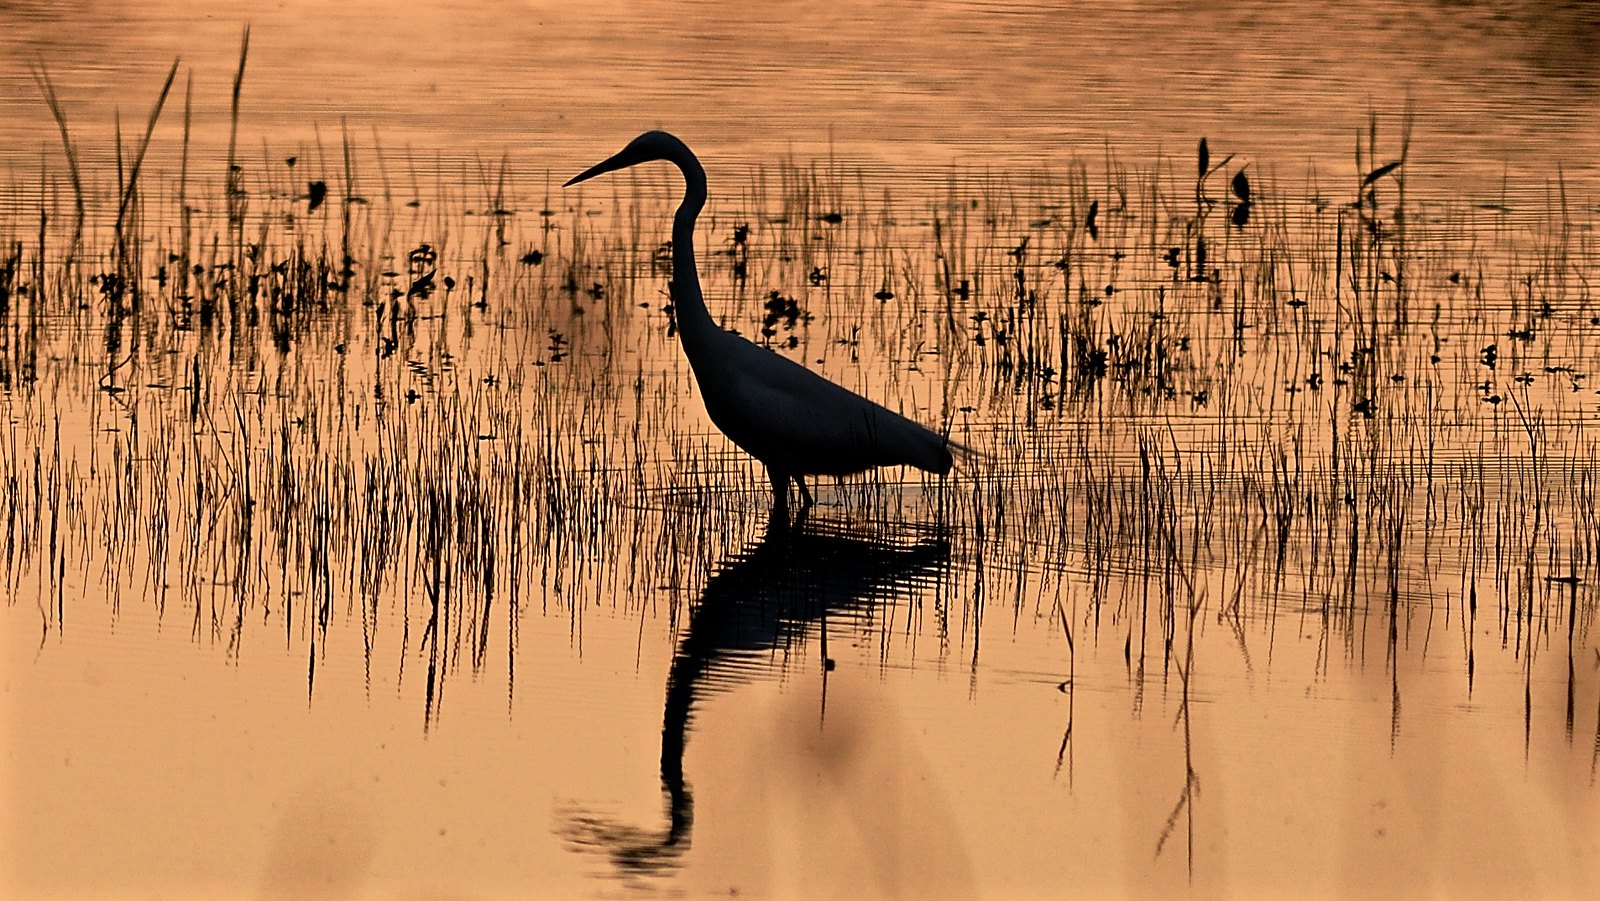 Great White Egret fishing as the sun sets